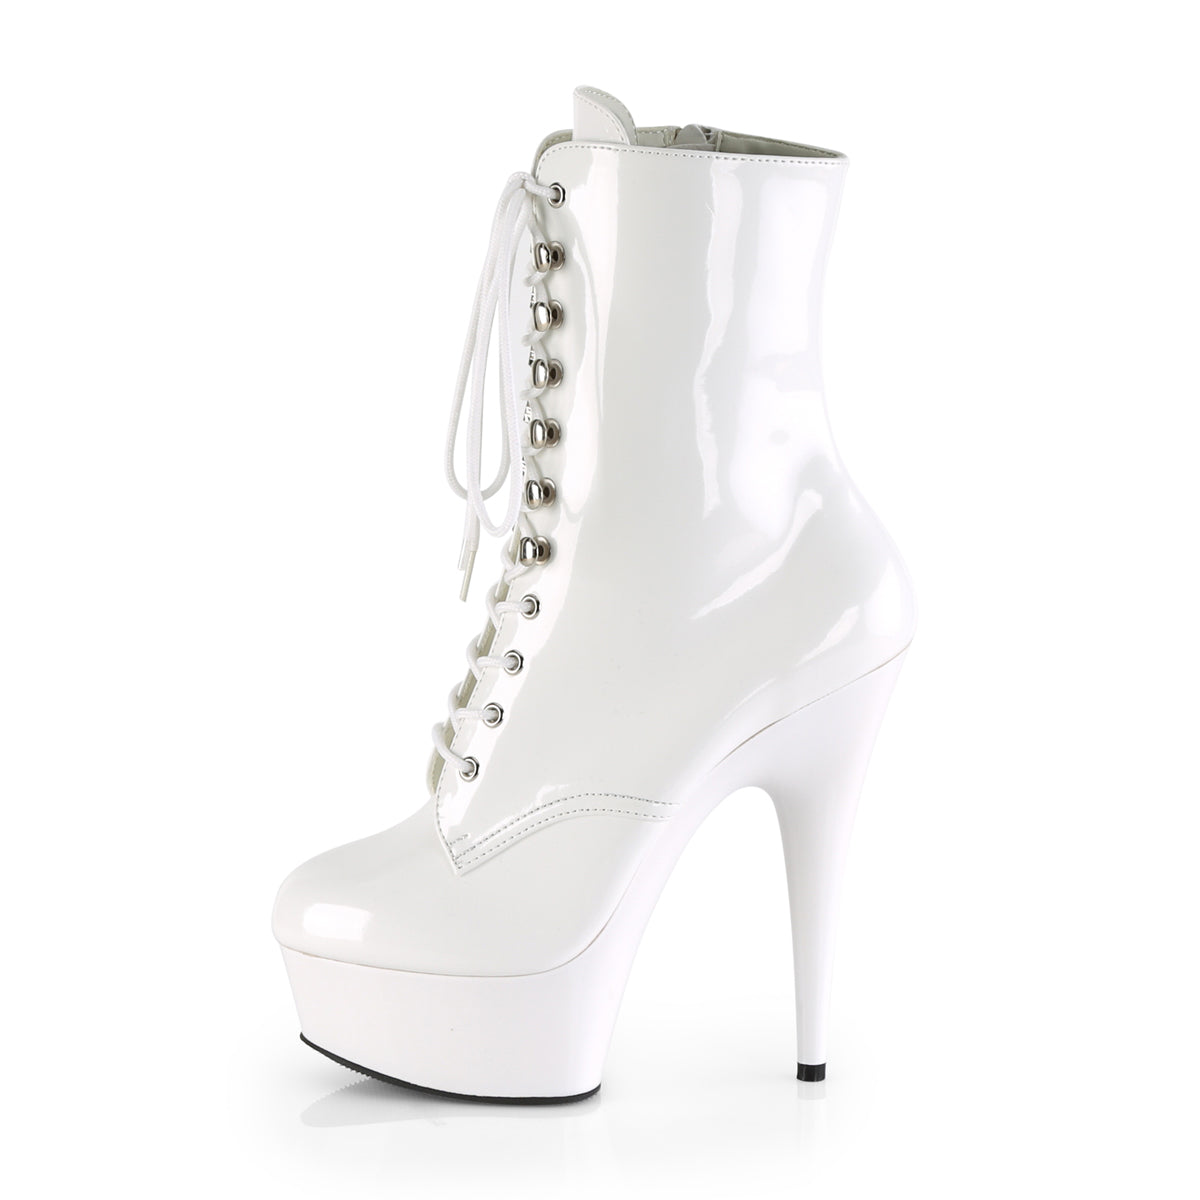 4ee15d3f4055 DELIGHT-1020 Pleaser Sexy Boots 6 Inch Lace-Up Platforms Ankle Boots ...